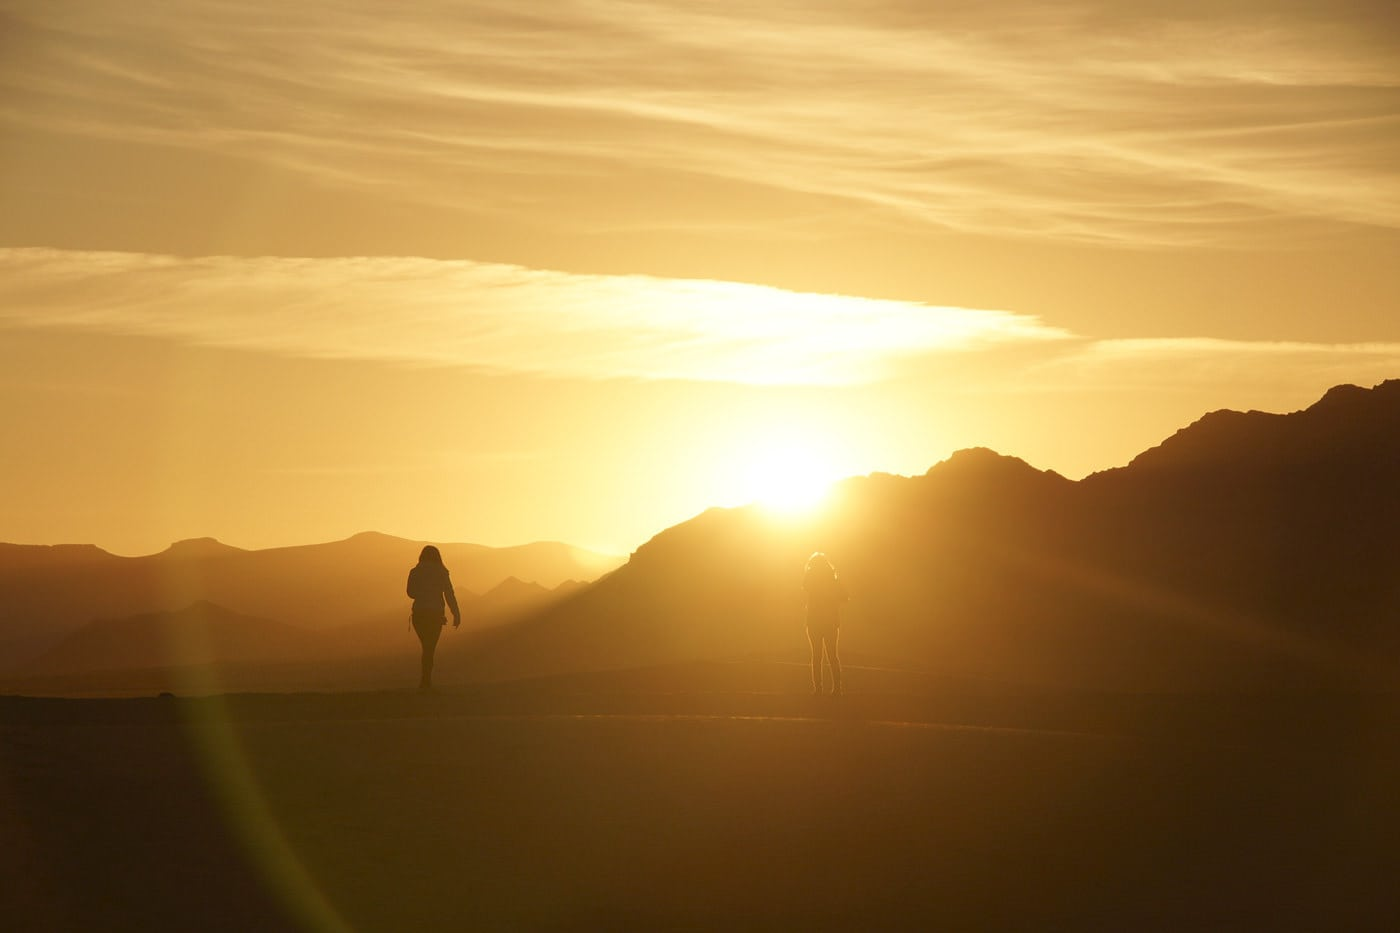 Silhouettes of two women at sunset in Morocco.